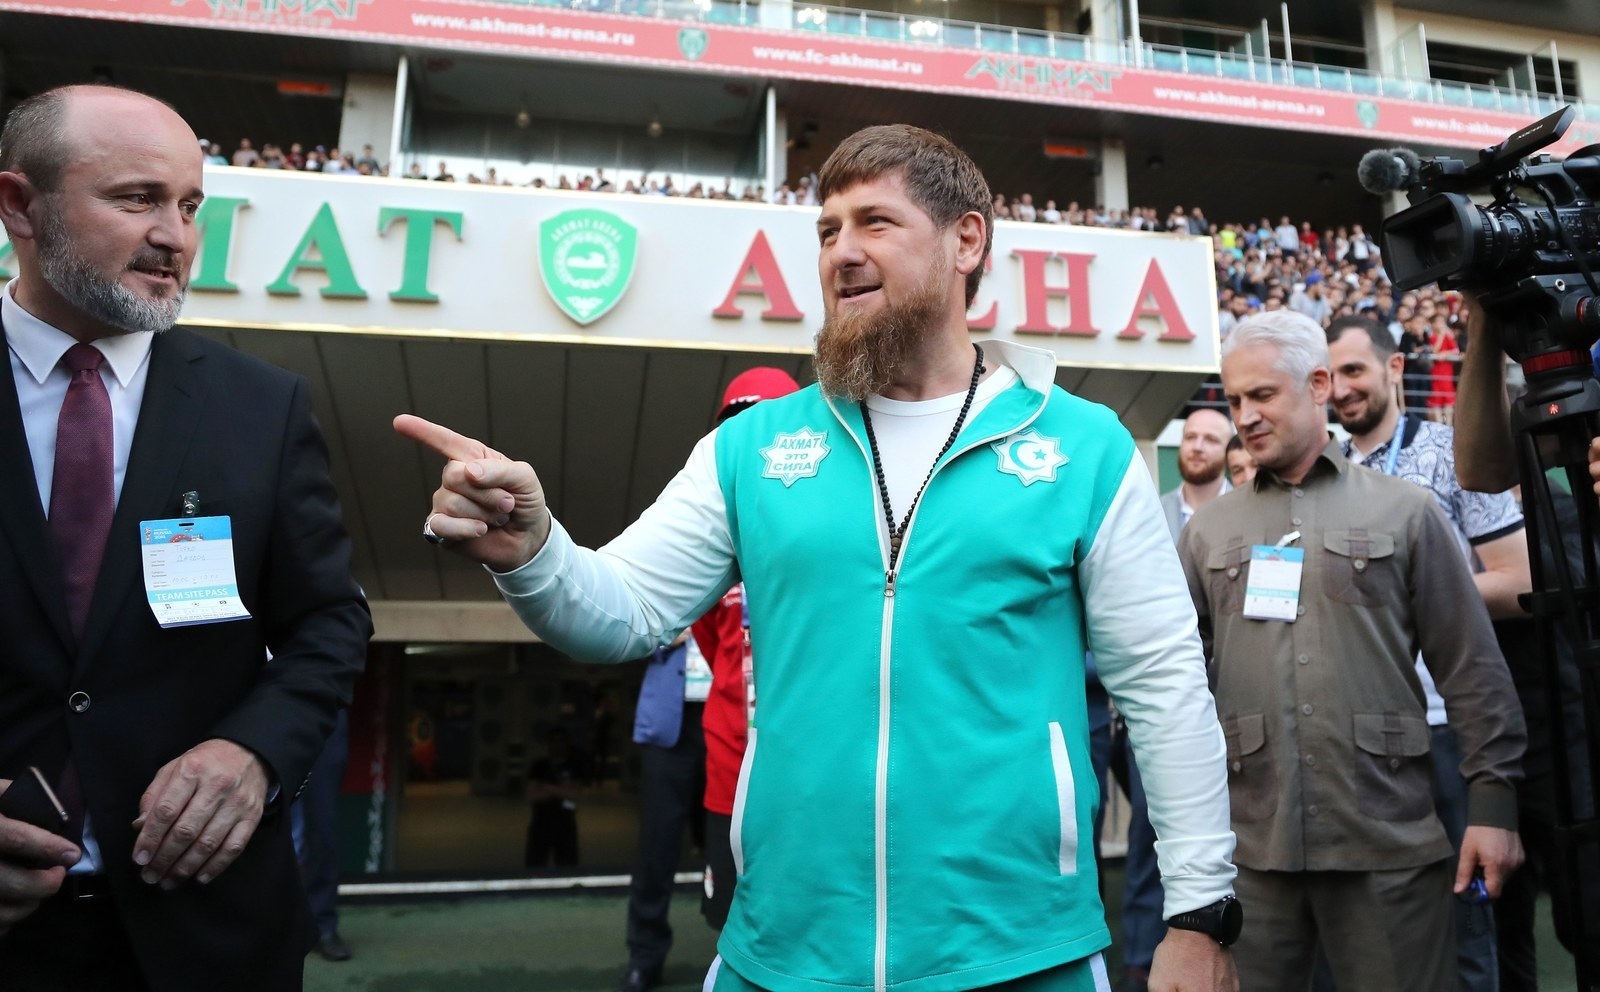 Chechen leader Ramzan Kadyrov — a man once described as being  addicted  to Instagram — regained access to his account on Wednesday, after being blocked from the platform for nearly a year.